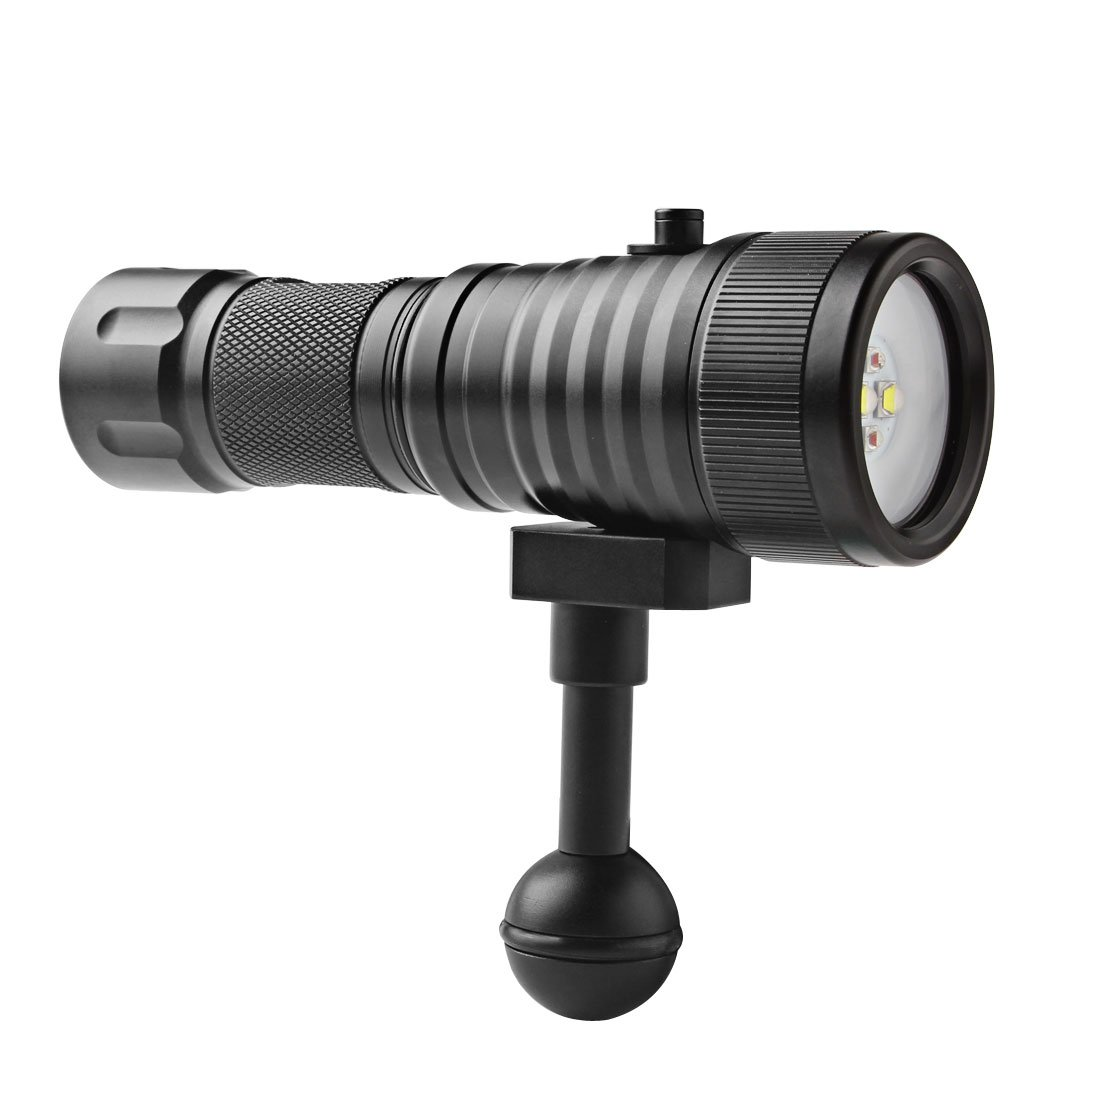 SecurityIng Wide 120 Degrees Beam Angle Scuba Diving Photography Video Flashlight 1500LM with 2 x Cree XM-L2(U4) White Light + 2 x XP-E R5 Red LED (Battery Included) by SecurityIng